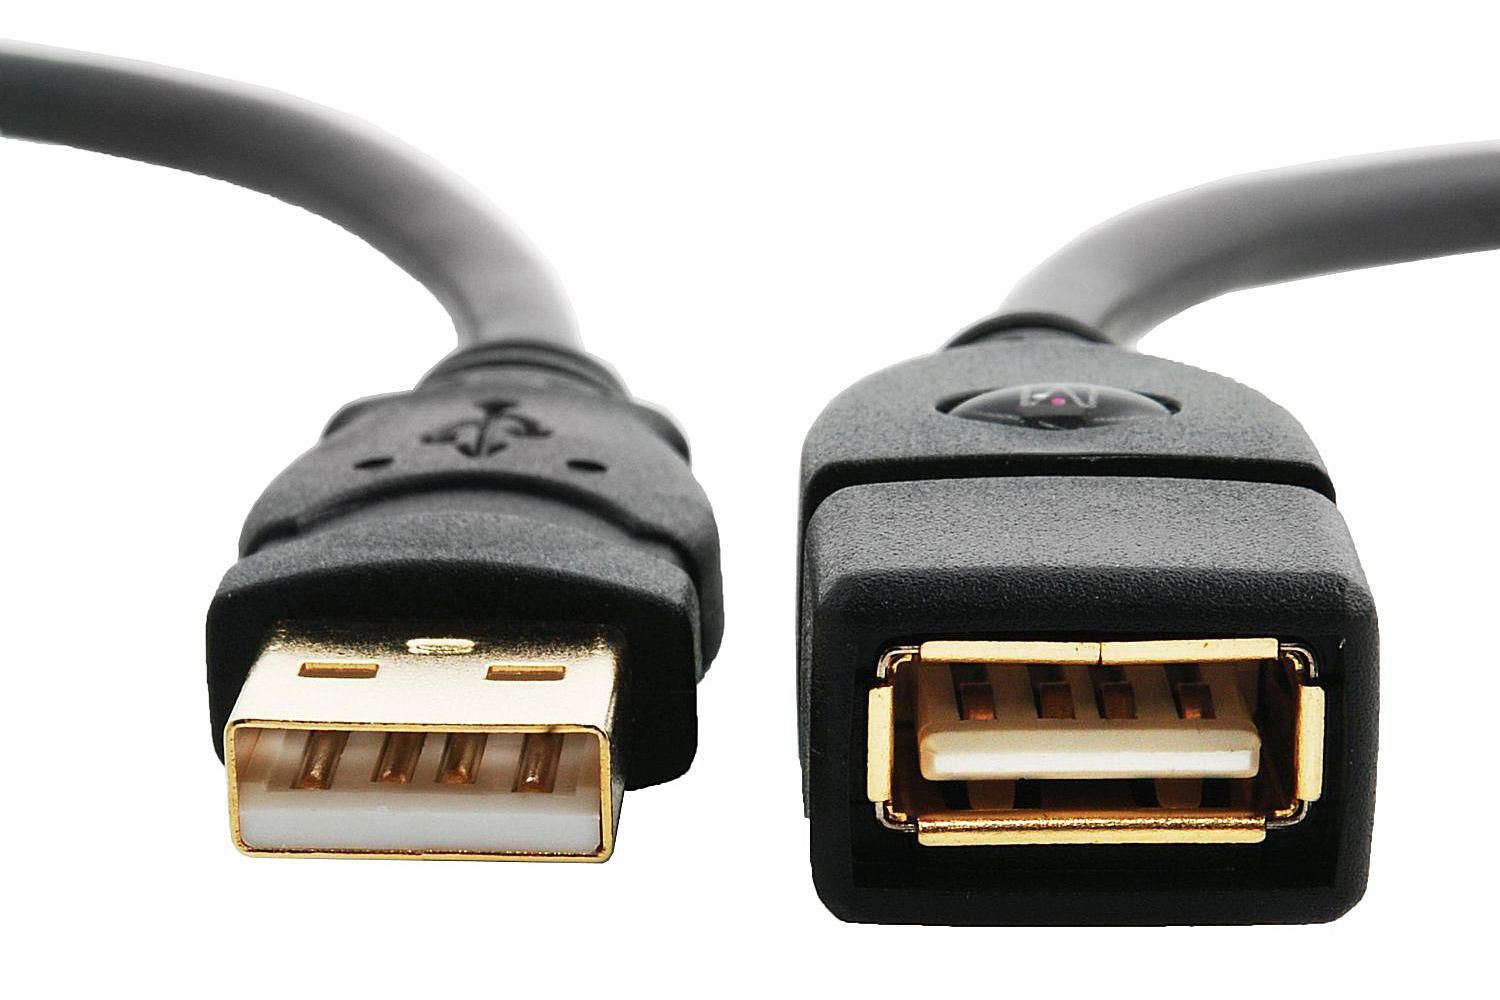 Usb Physical Compatibility Chart 30 20 11 2 0 Wiring